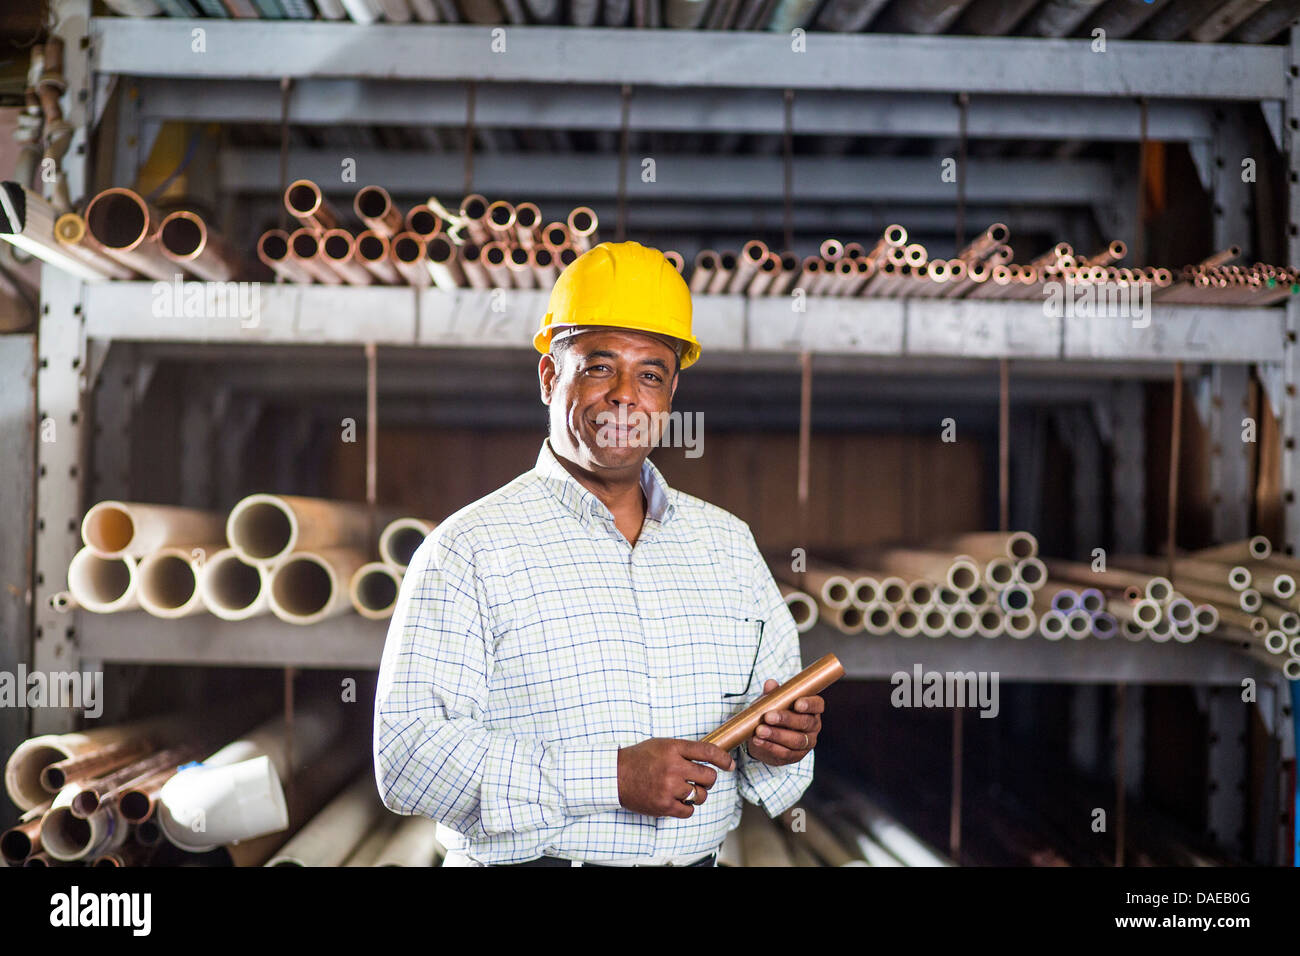 Man in warehouse with copper pipe - Stock Image